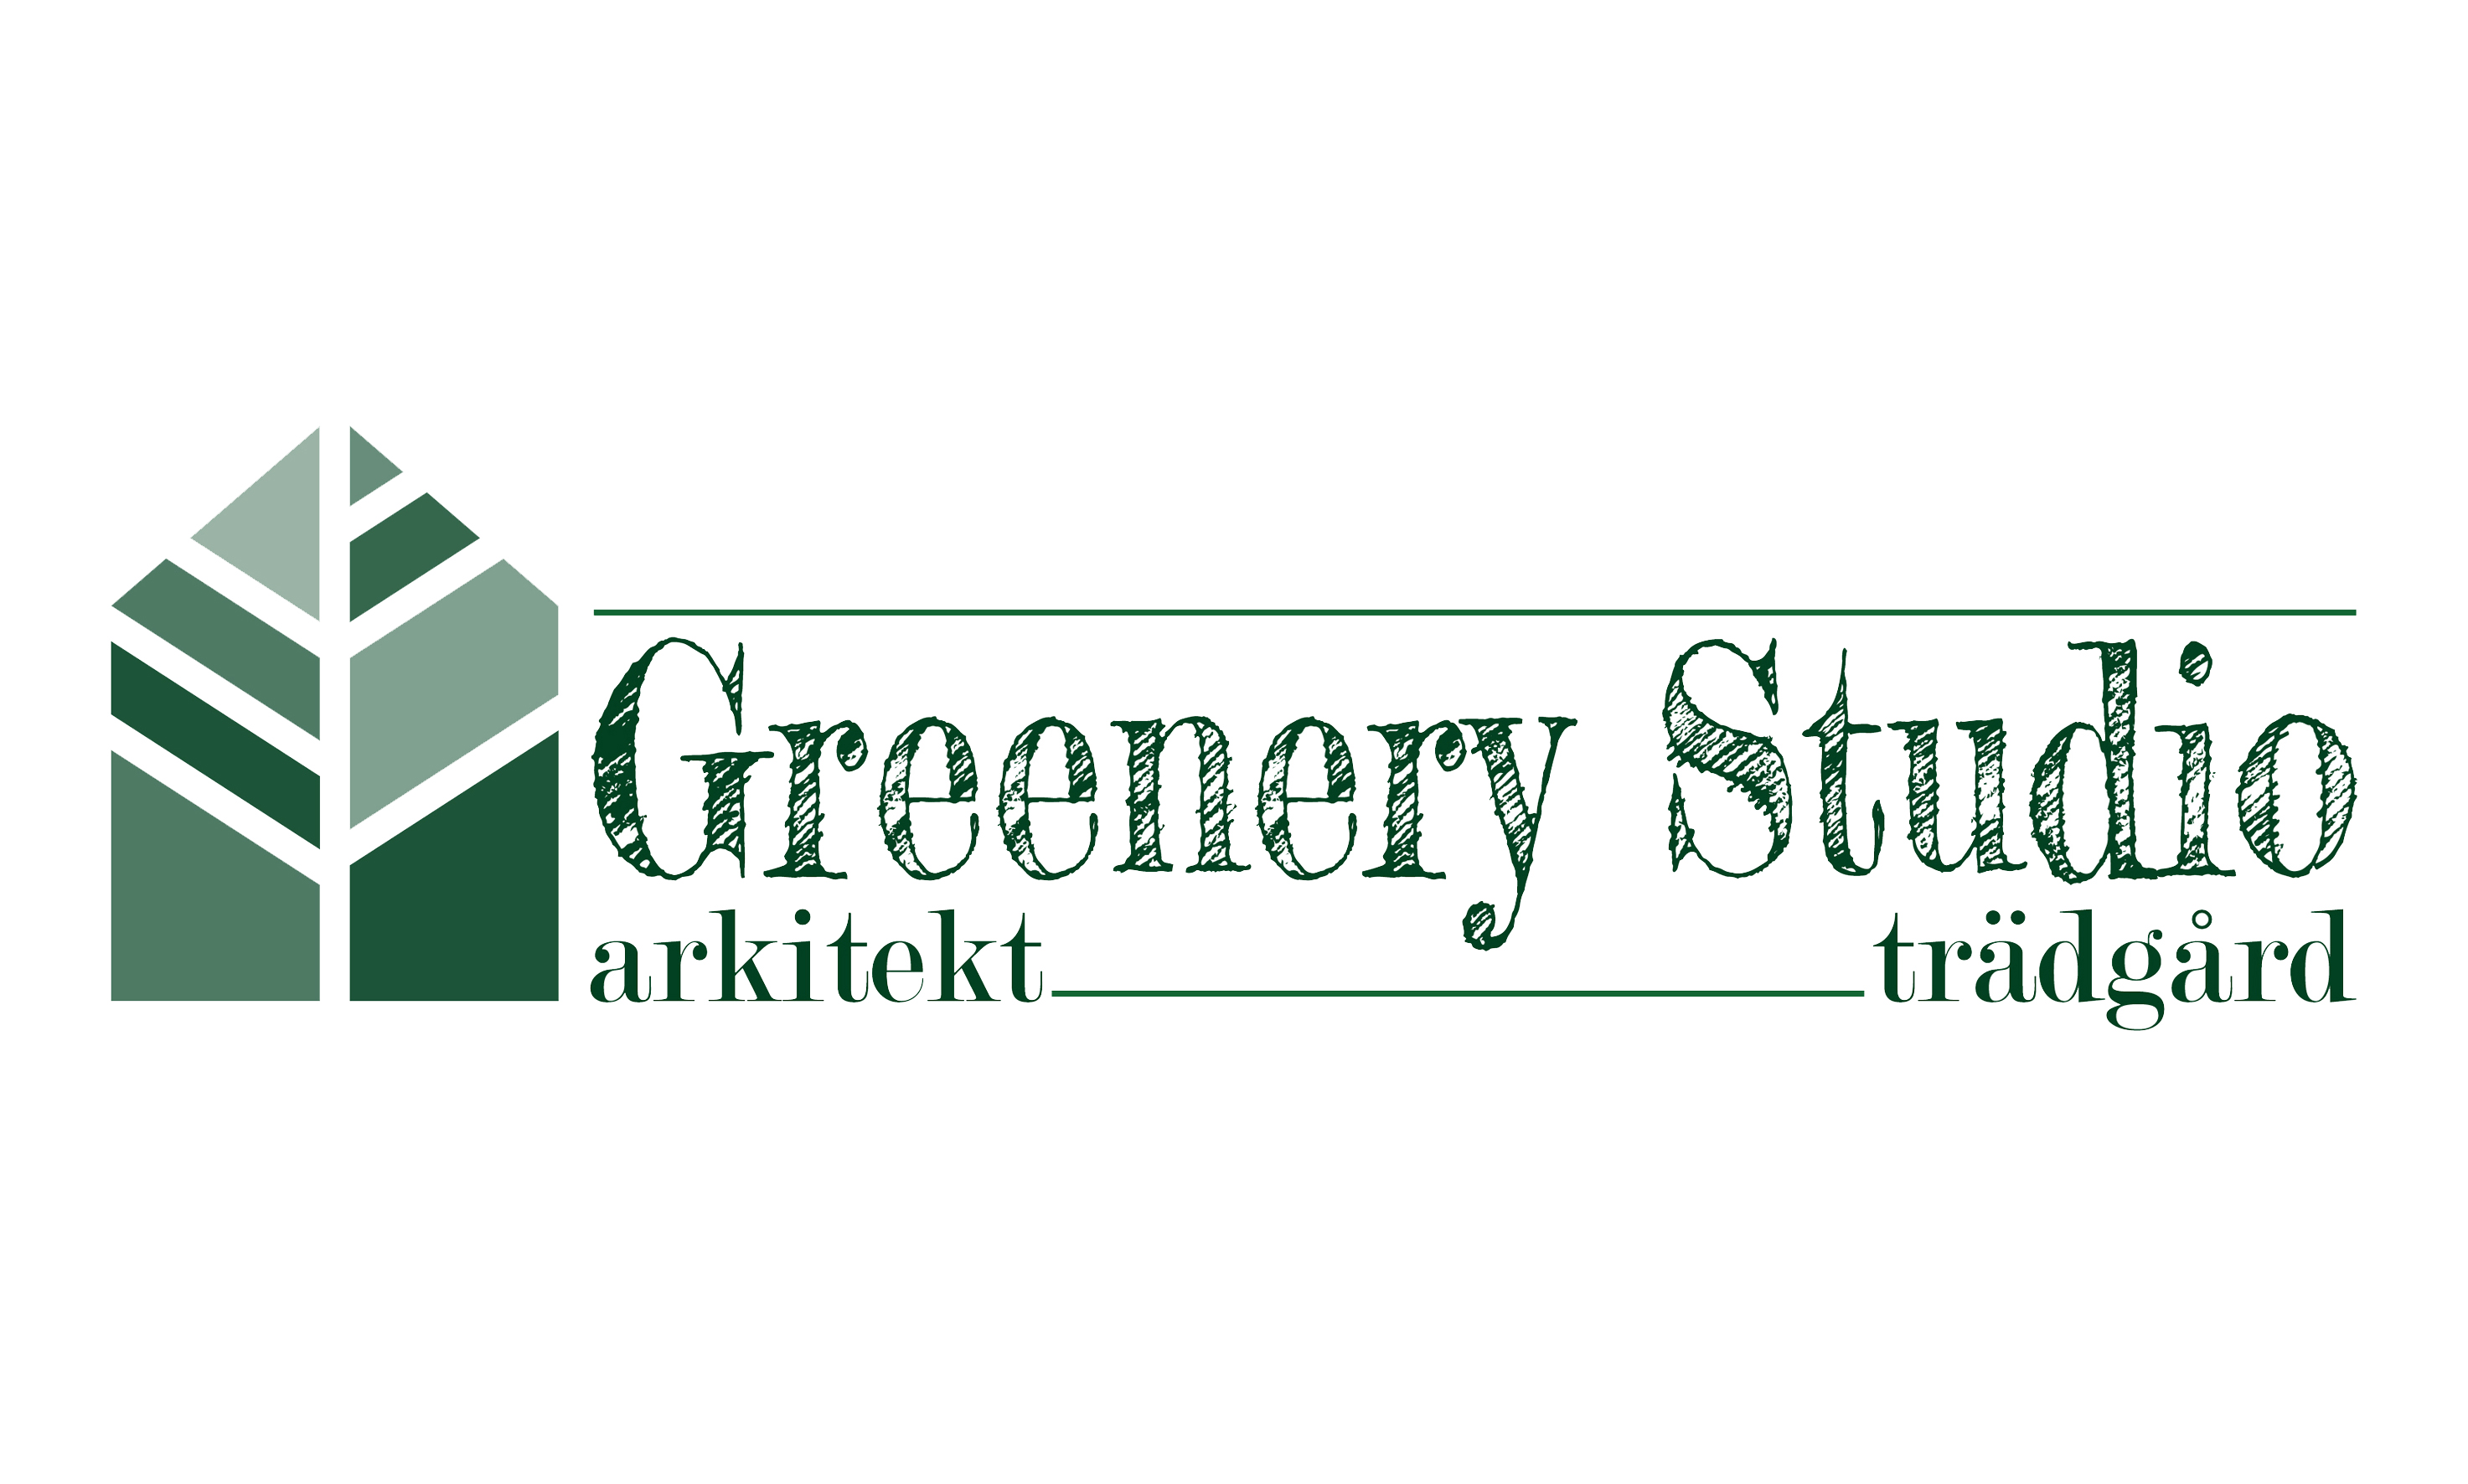 GREENERY STODIO FINAL LOGO